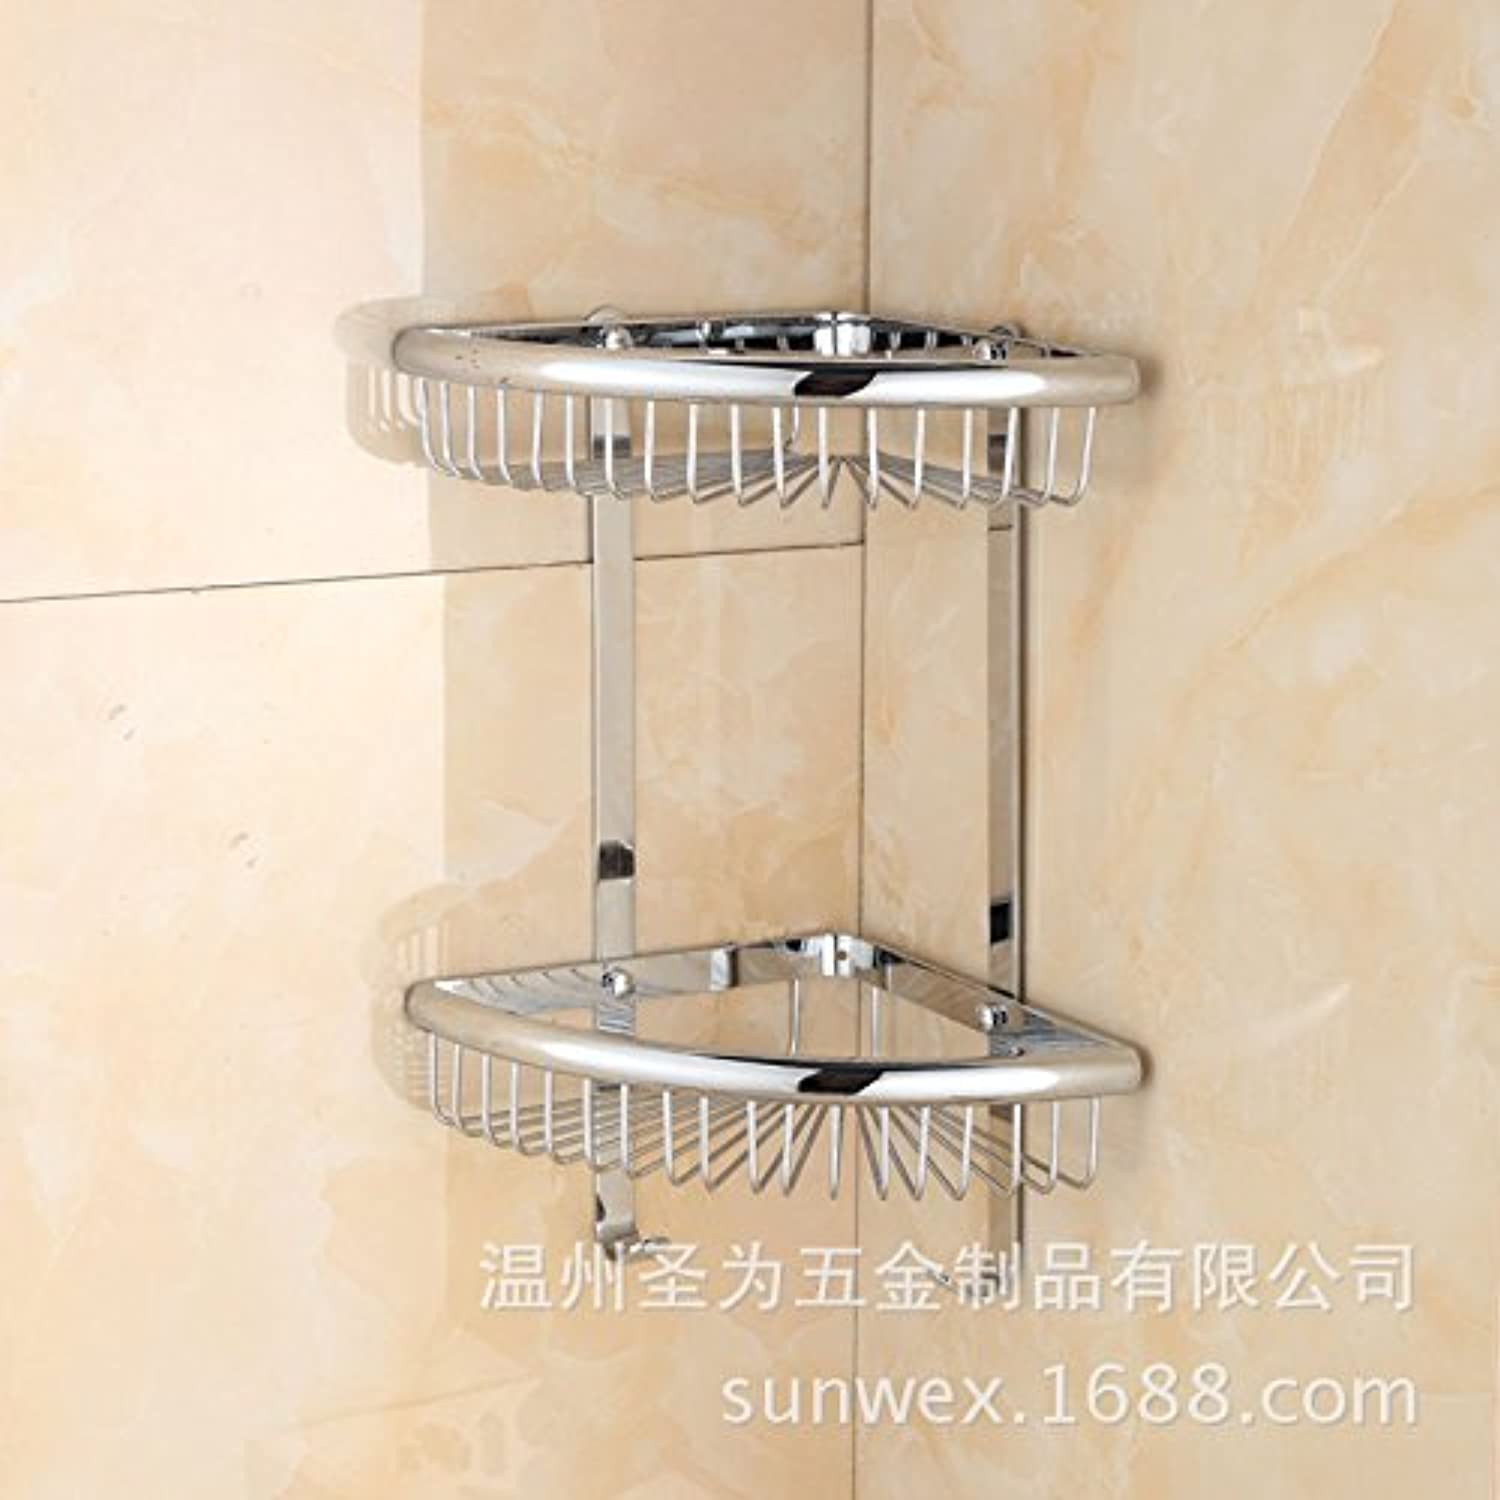 Copper bathroom corner shelves wall mounted triangle shelf basket double hook drain basket bathroom corner shelf